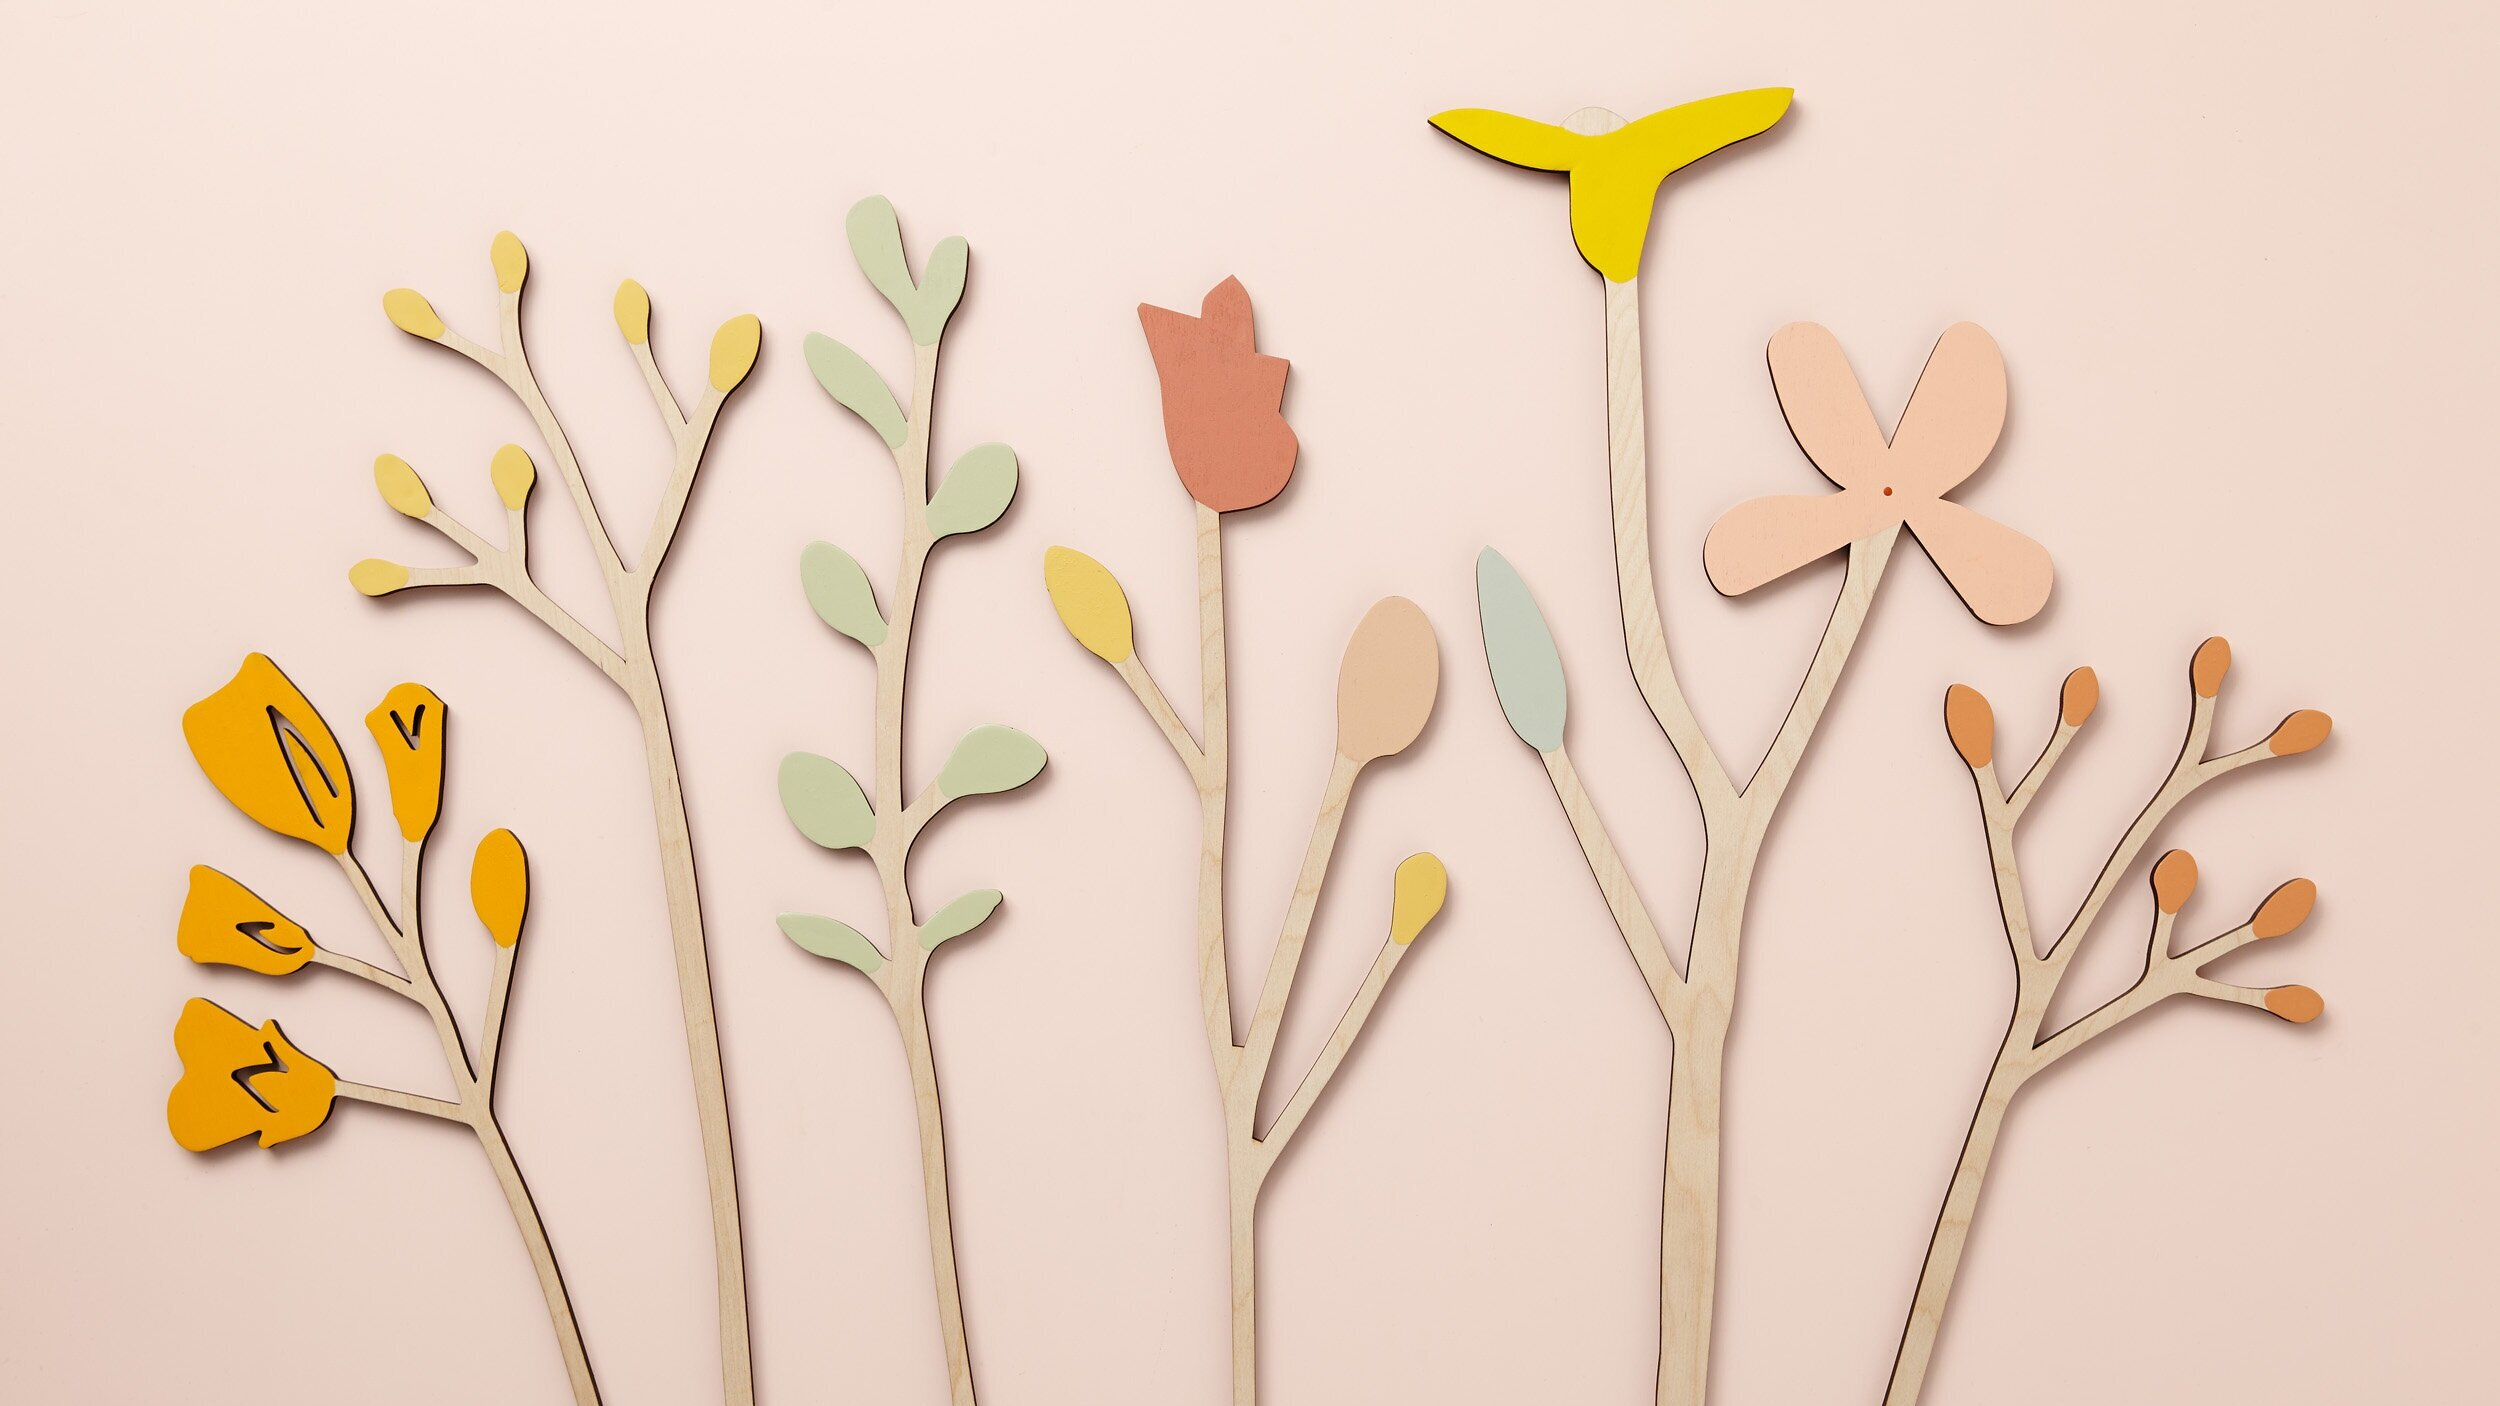 FOLK - A new collection of decorative ornaments inspired by folk customs and traditions